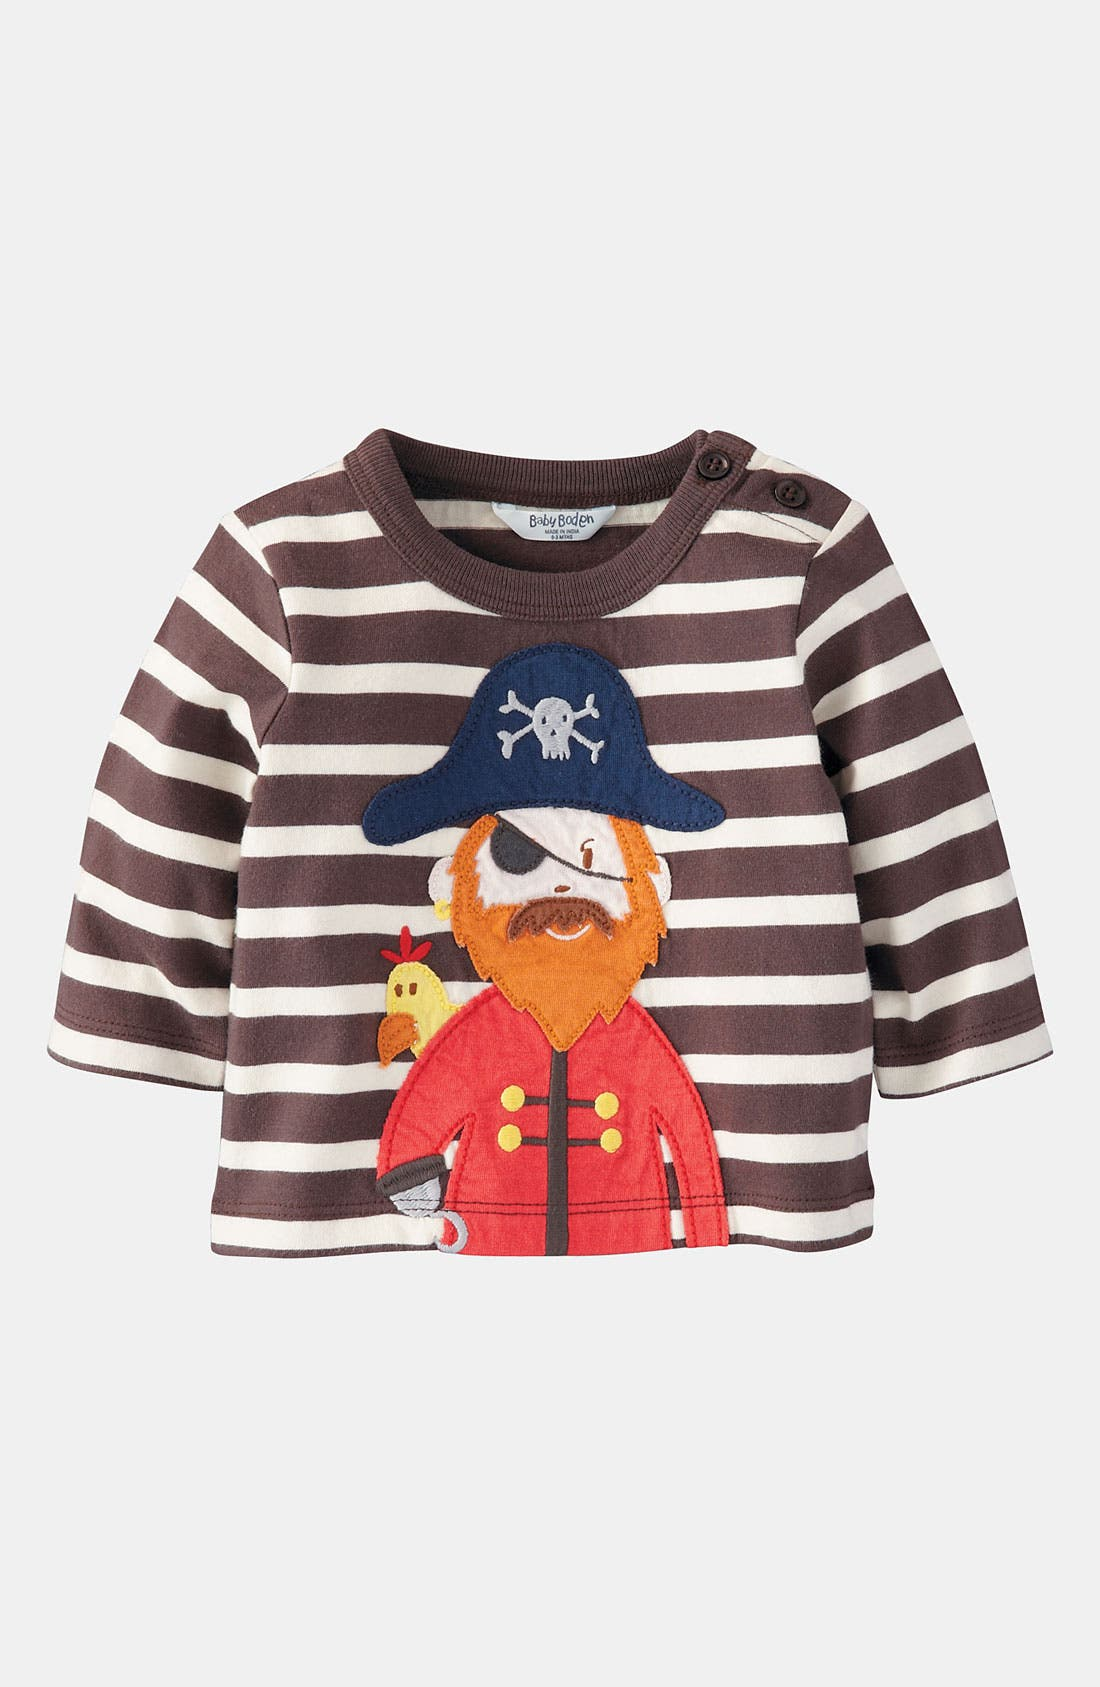 Alternate Image 1 Selected - Mini Boden 'When I Grow Up' T-Shirt (Infant)